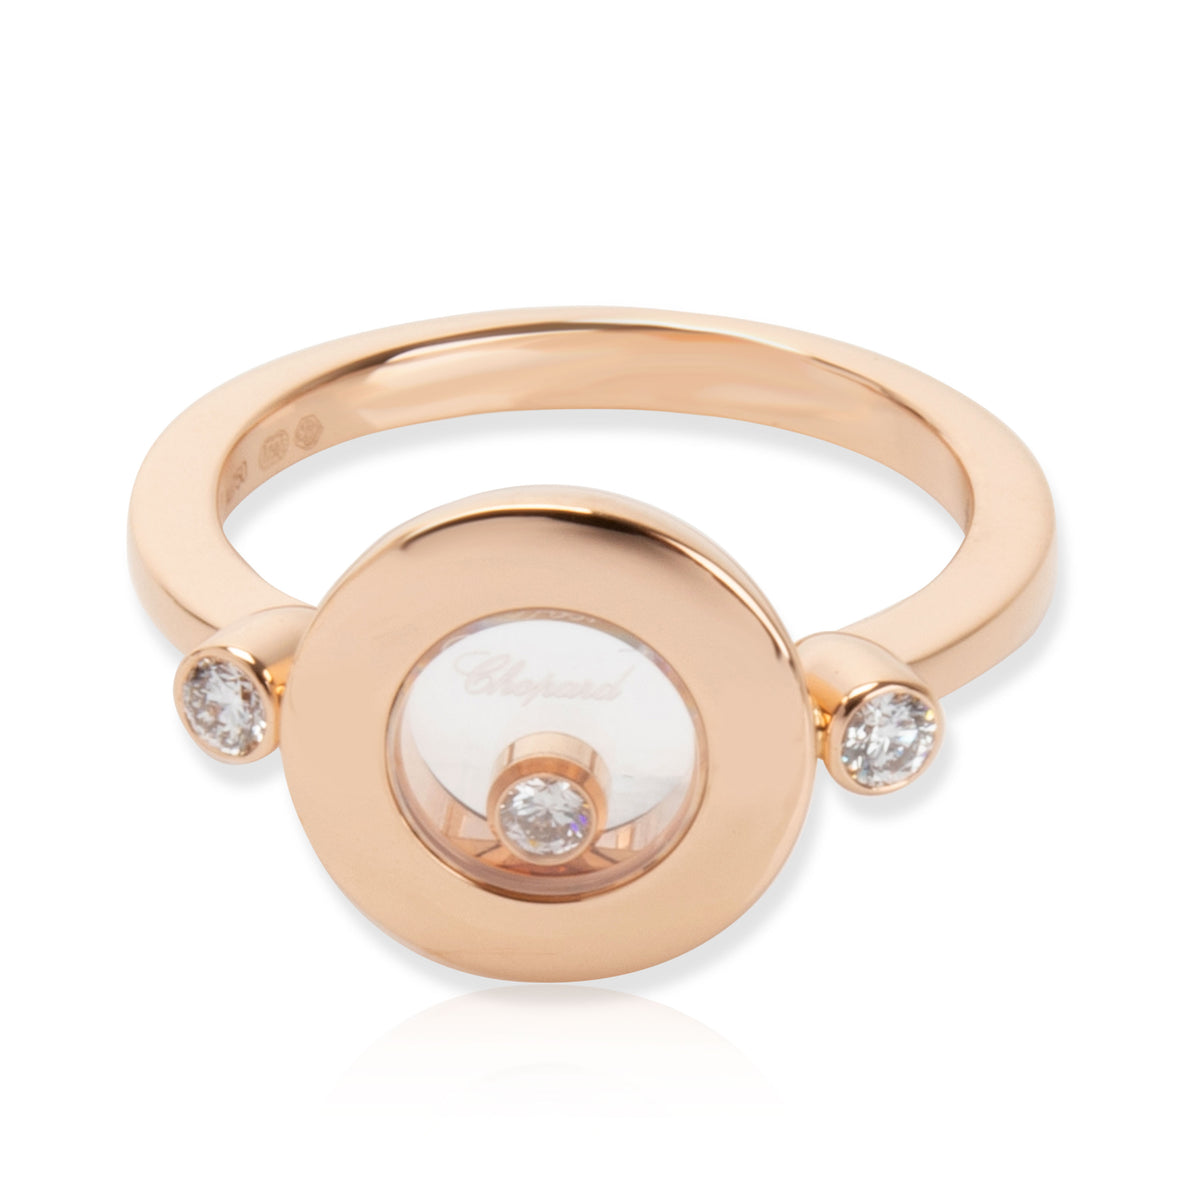 Chopard Happy Diamonds Ring in 18K Rose Gold 0.14 CTW